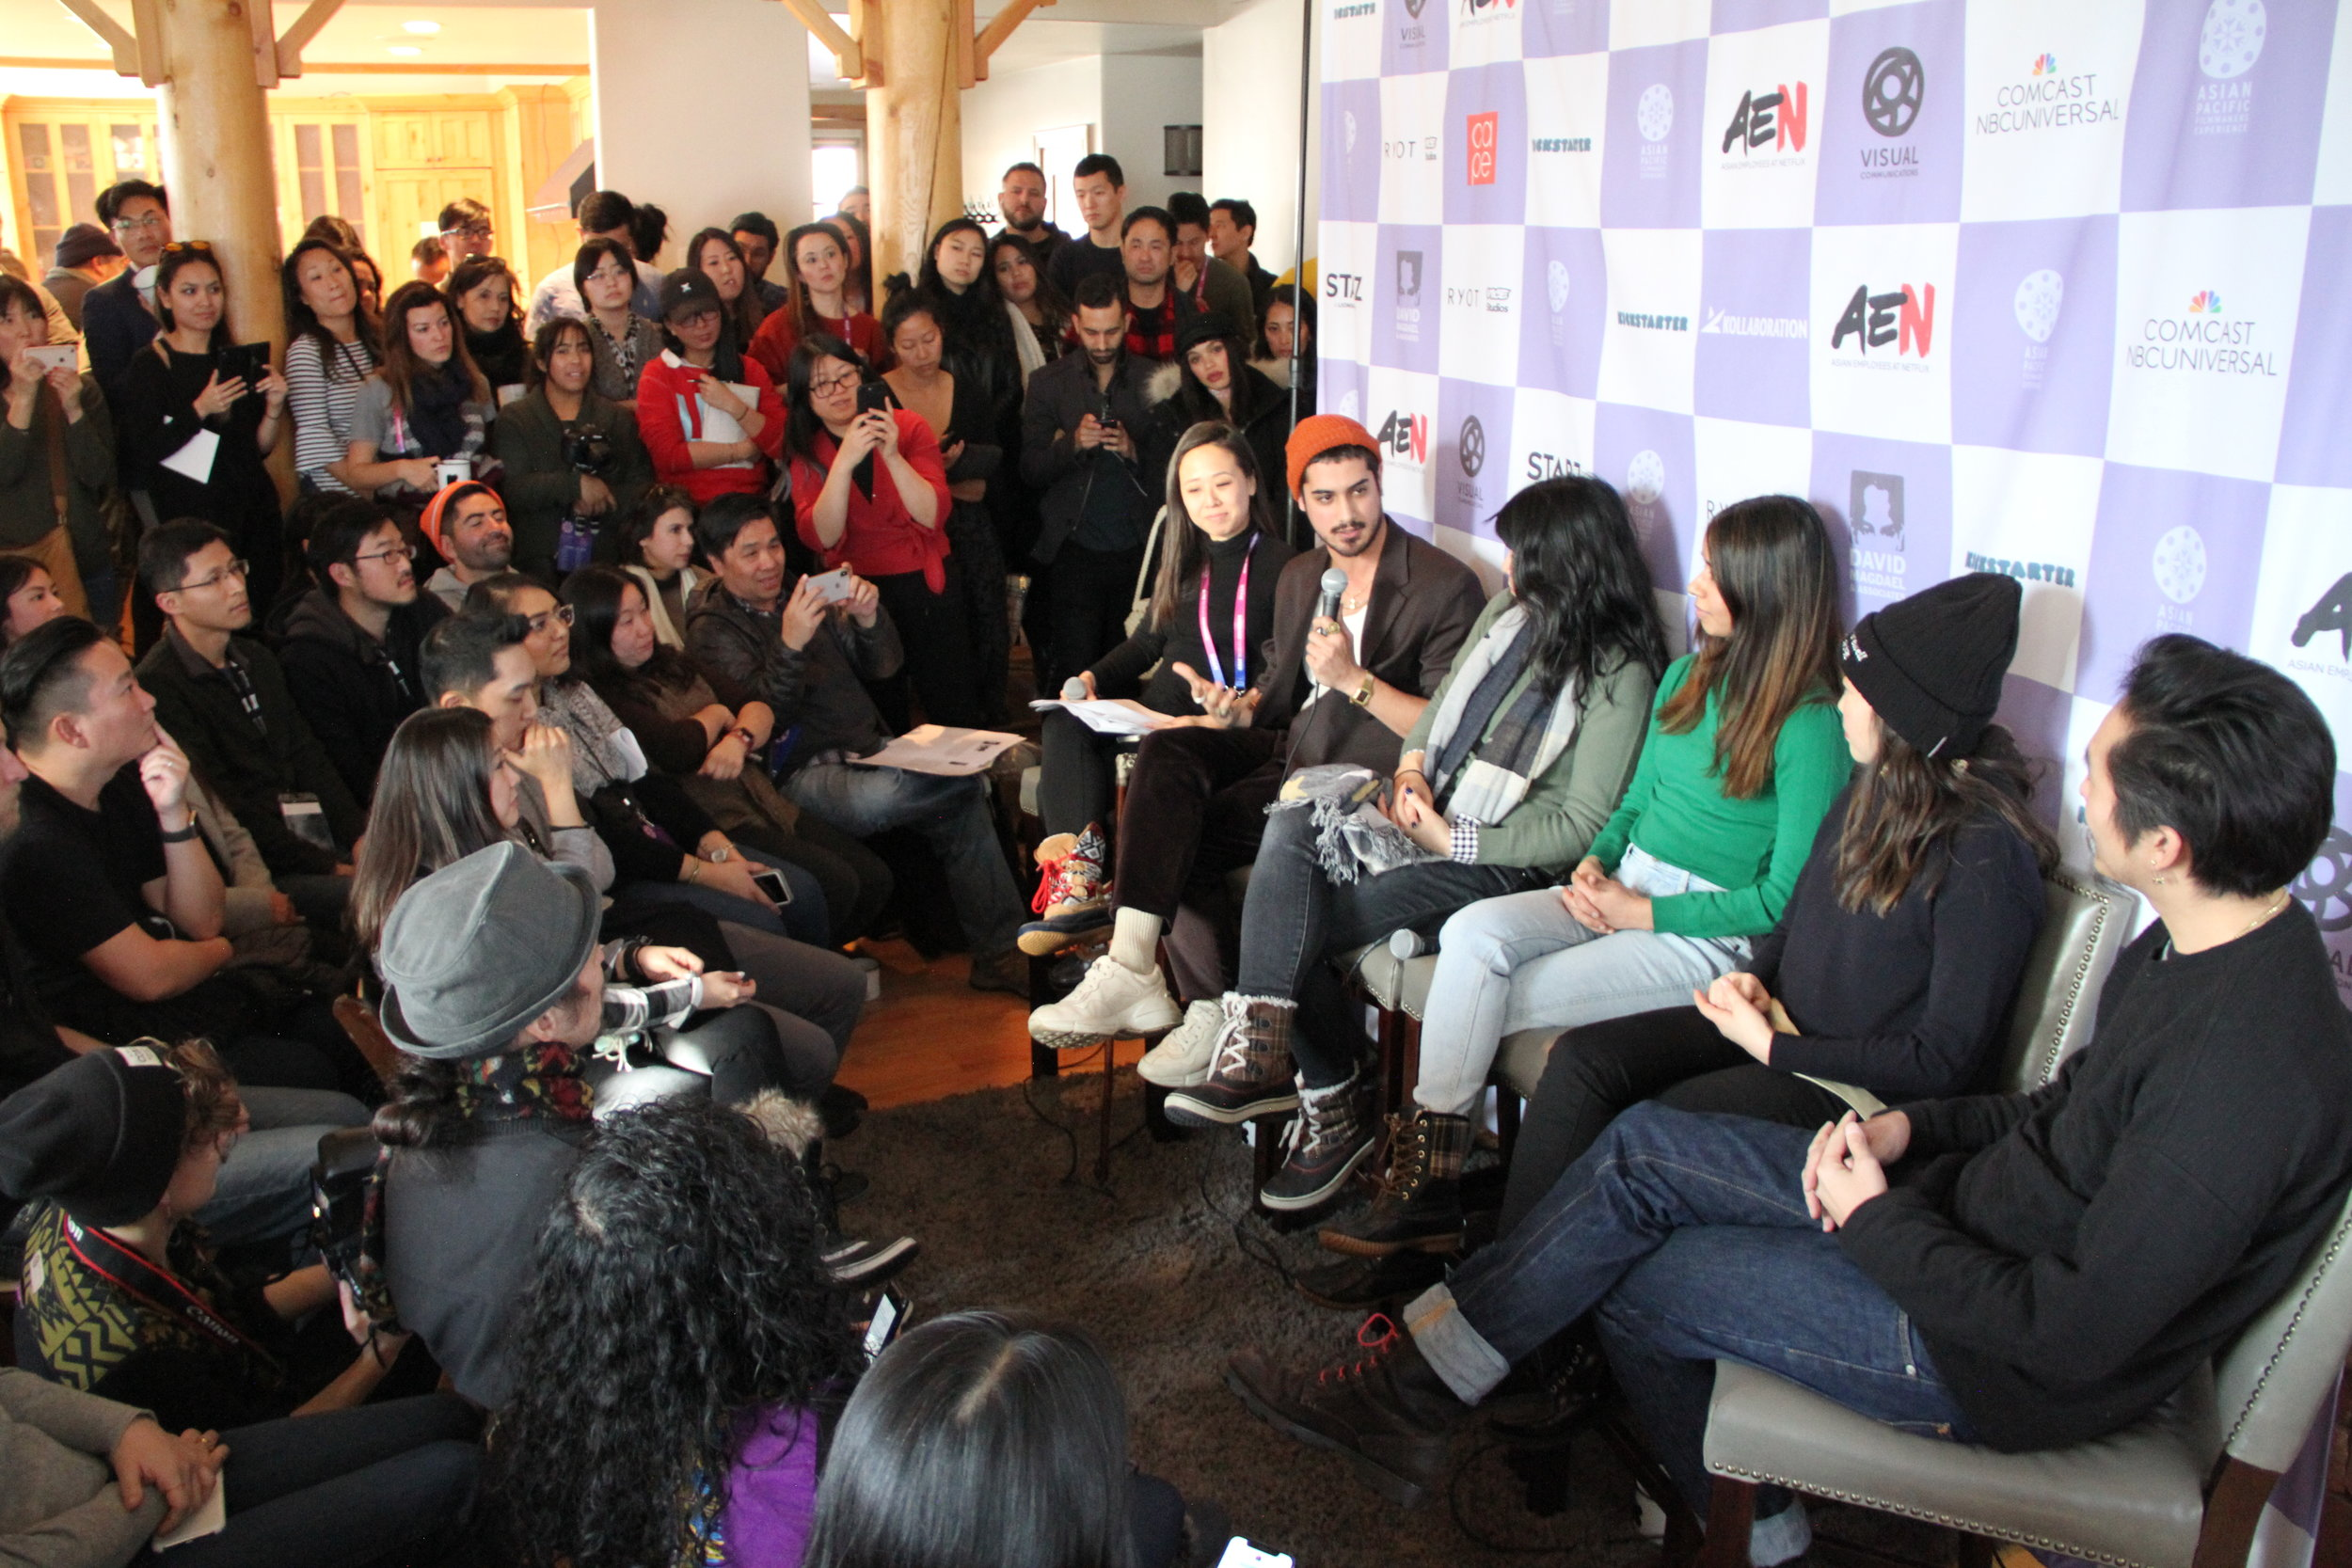 With a packed Kickstarter Lodge looking on, #APAParkCity Committee member Minji Chang gets things started by challenging the panelists to offer their forecasts for what 2019 holds for Asian Pacific filmmakers and creative artists. (Photo: Abraham Ferrer/Visual Communications Photographic Archive)